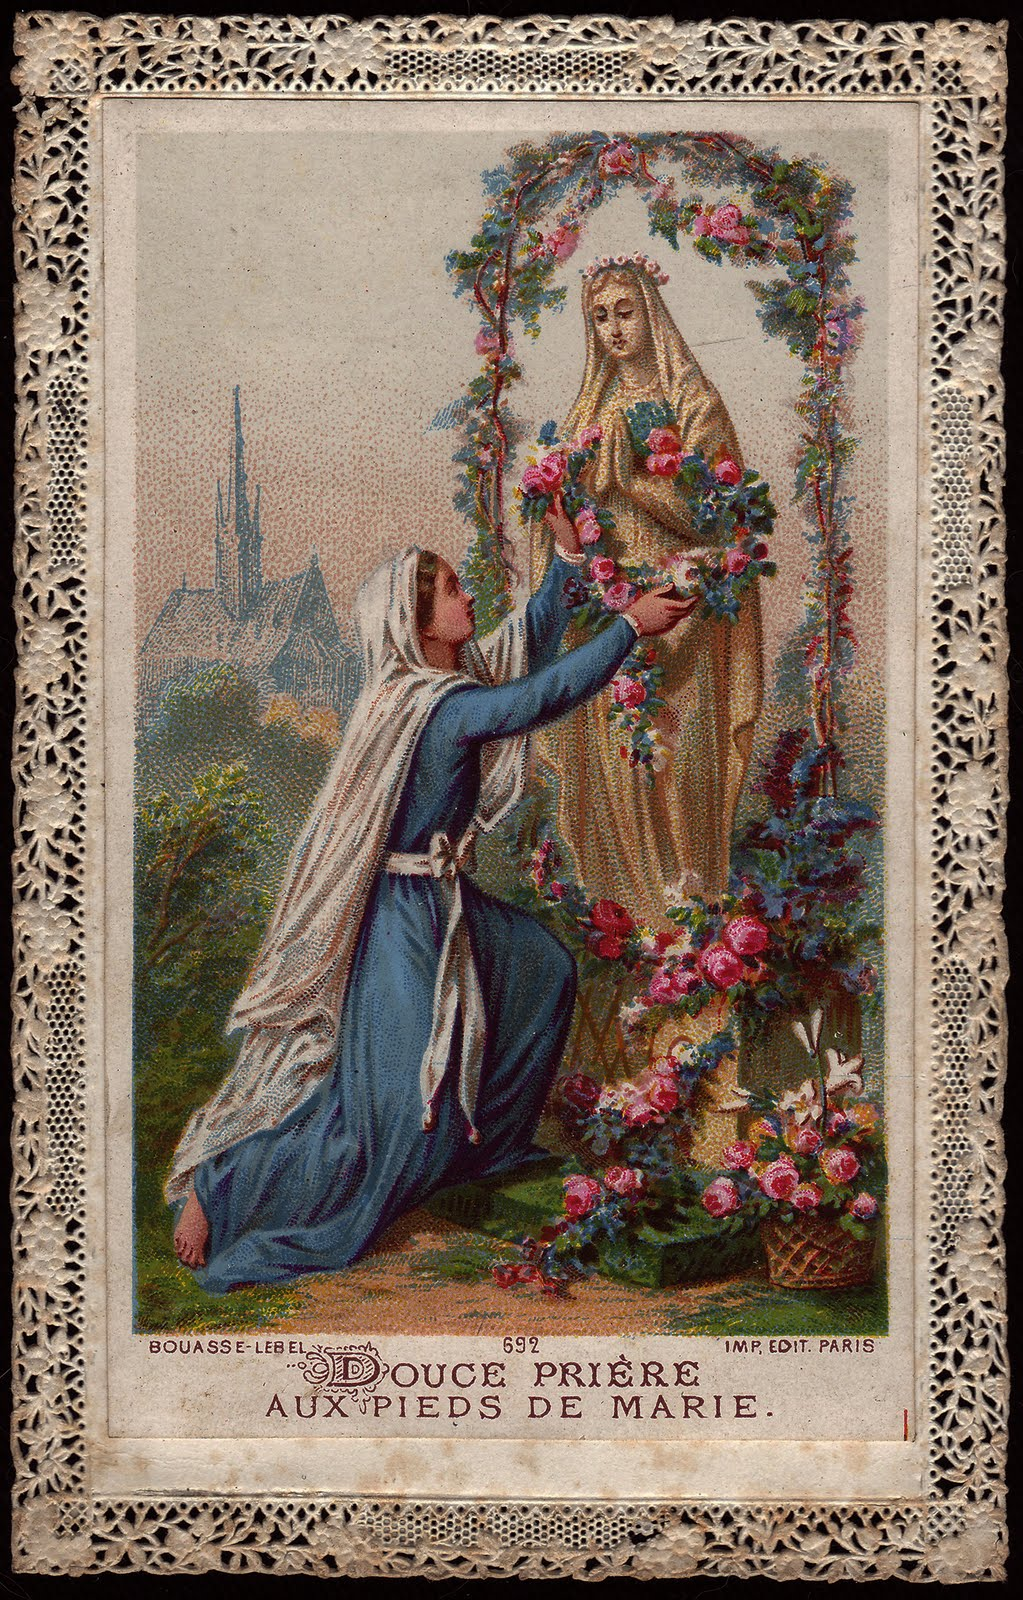 Douce prière aux pieds de Marie dans images sacrée sweet-prayer-at-the-feet-of-mary-dkr-bouasse-lebel